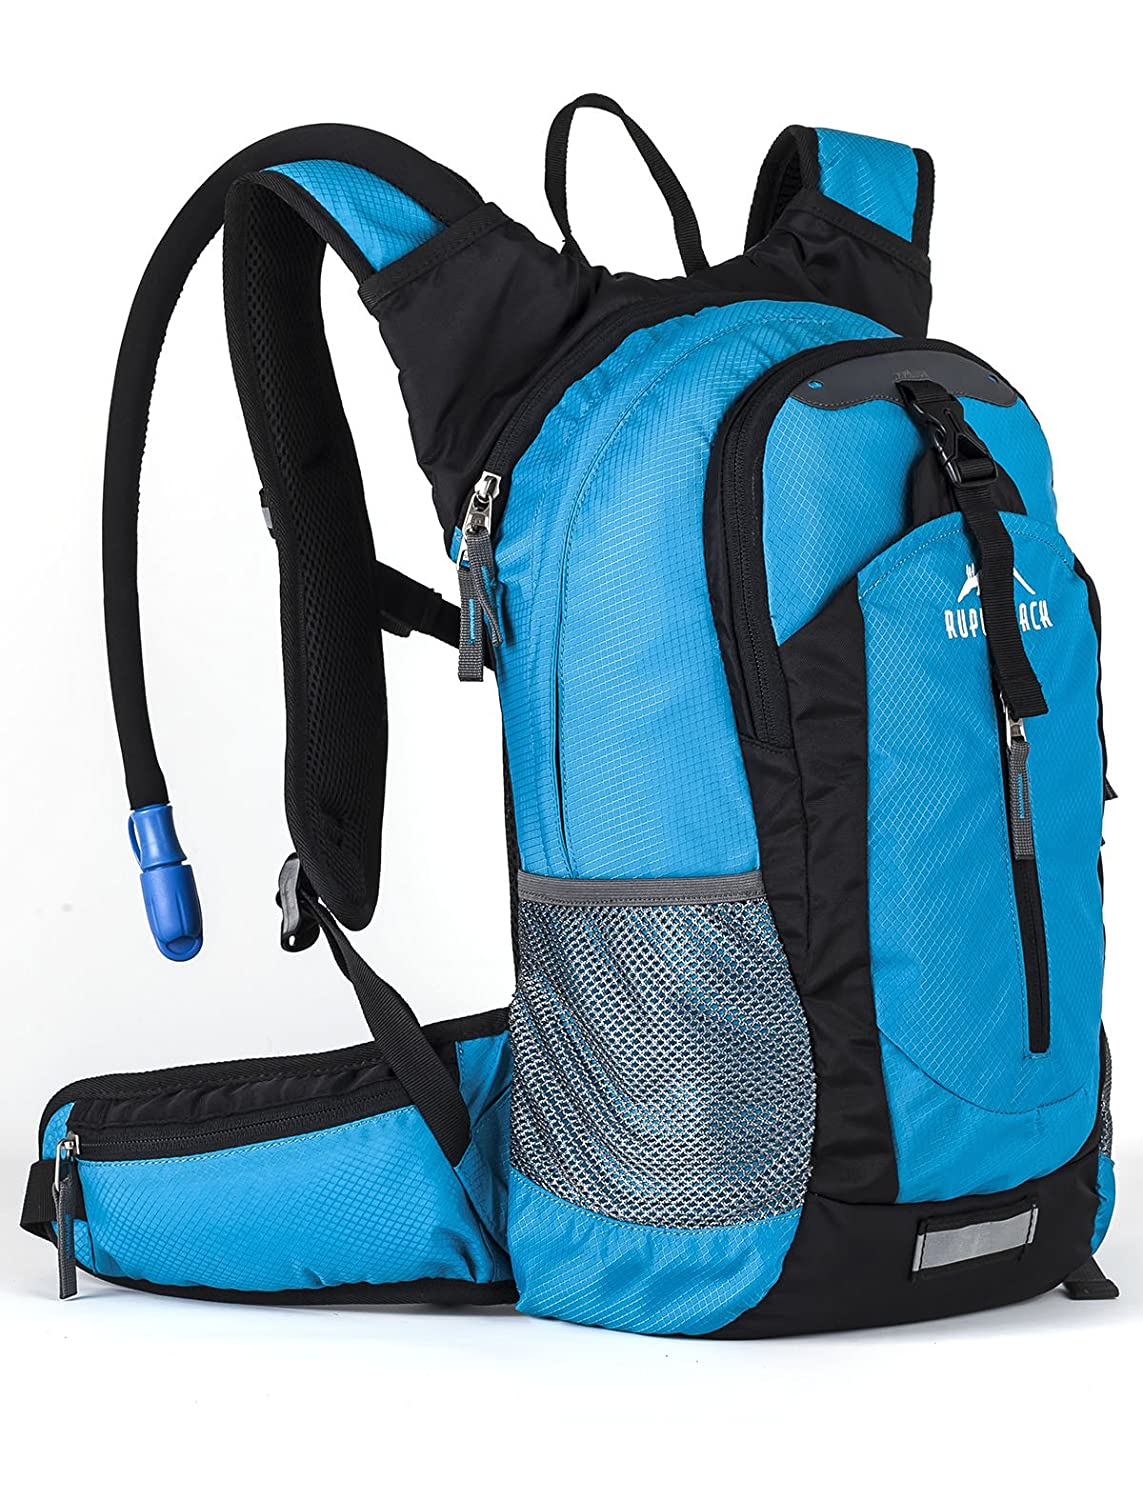 RUPUMPACK Insulated Hydration Backpack Pack